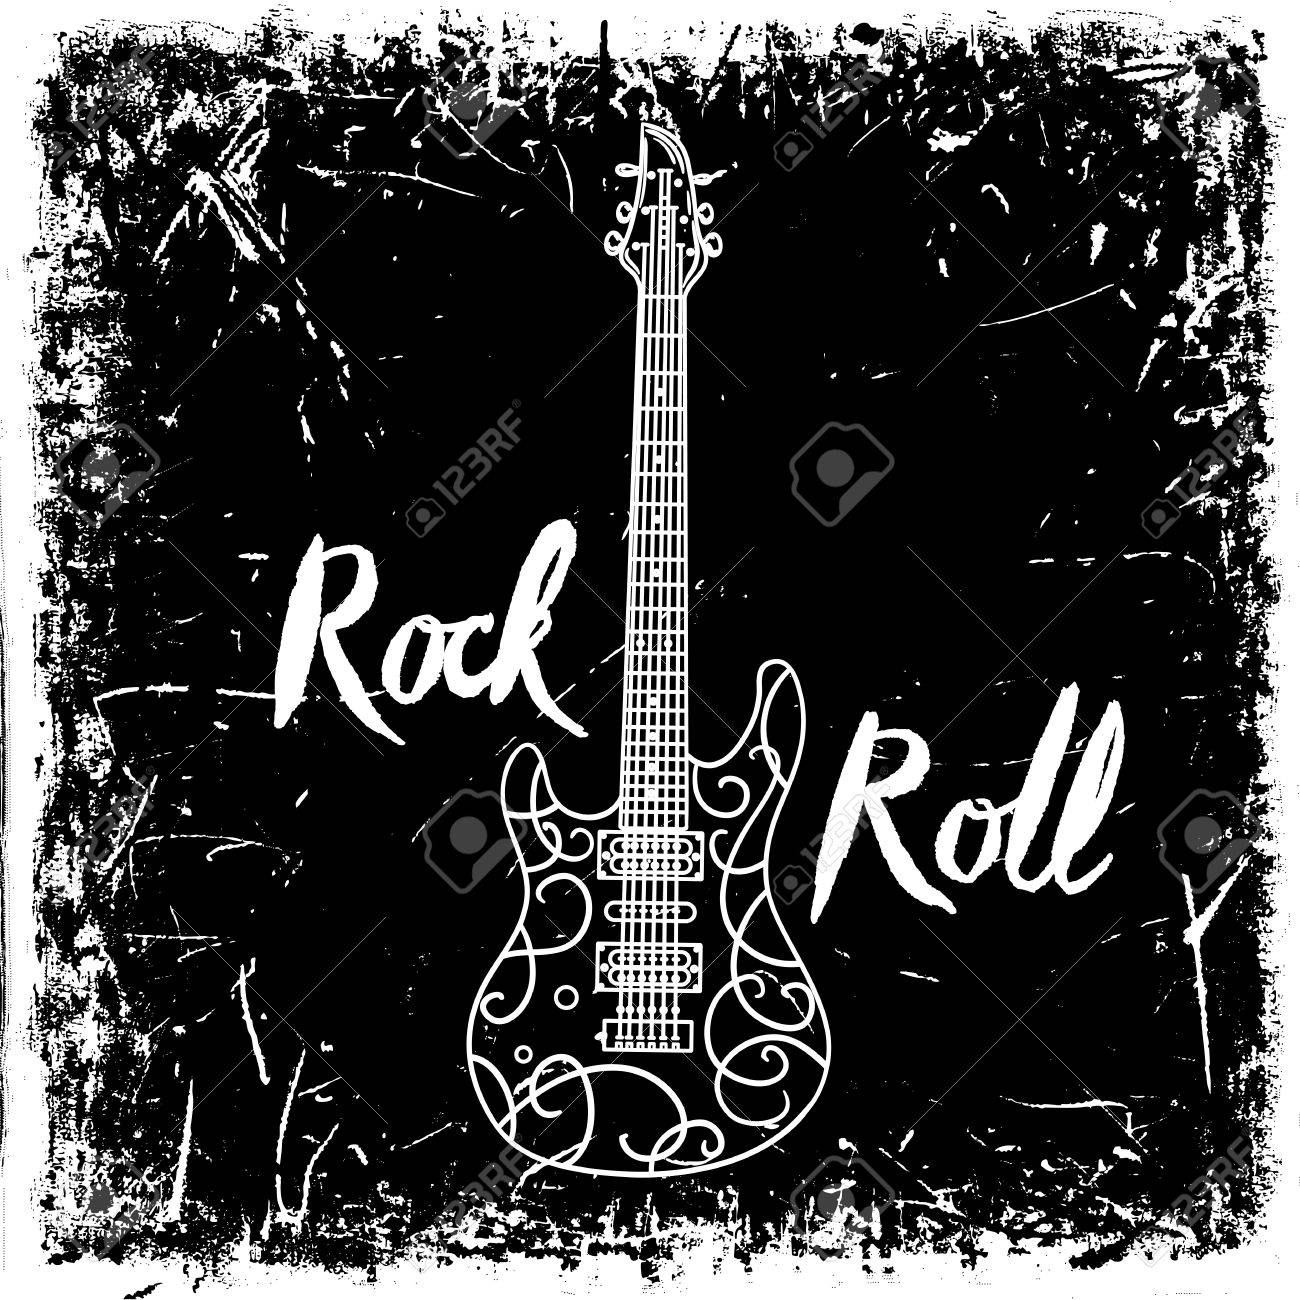 Vintage hand drawn poster with electric guitar and lettering rock and roll on grunge background. Retro vector illustration. Design, retro card, print, t-shirt, postcard - 49797514